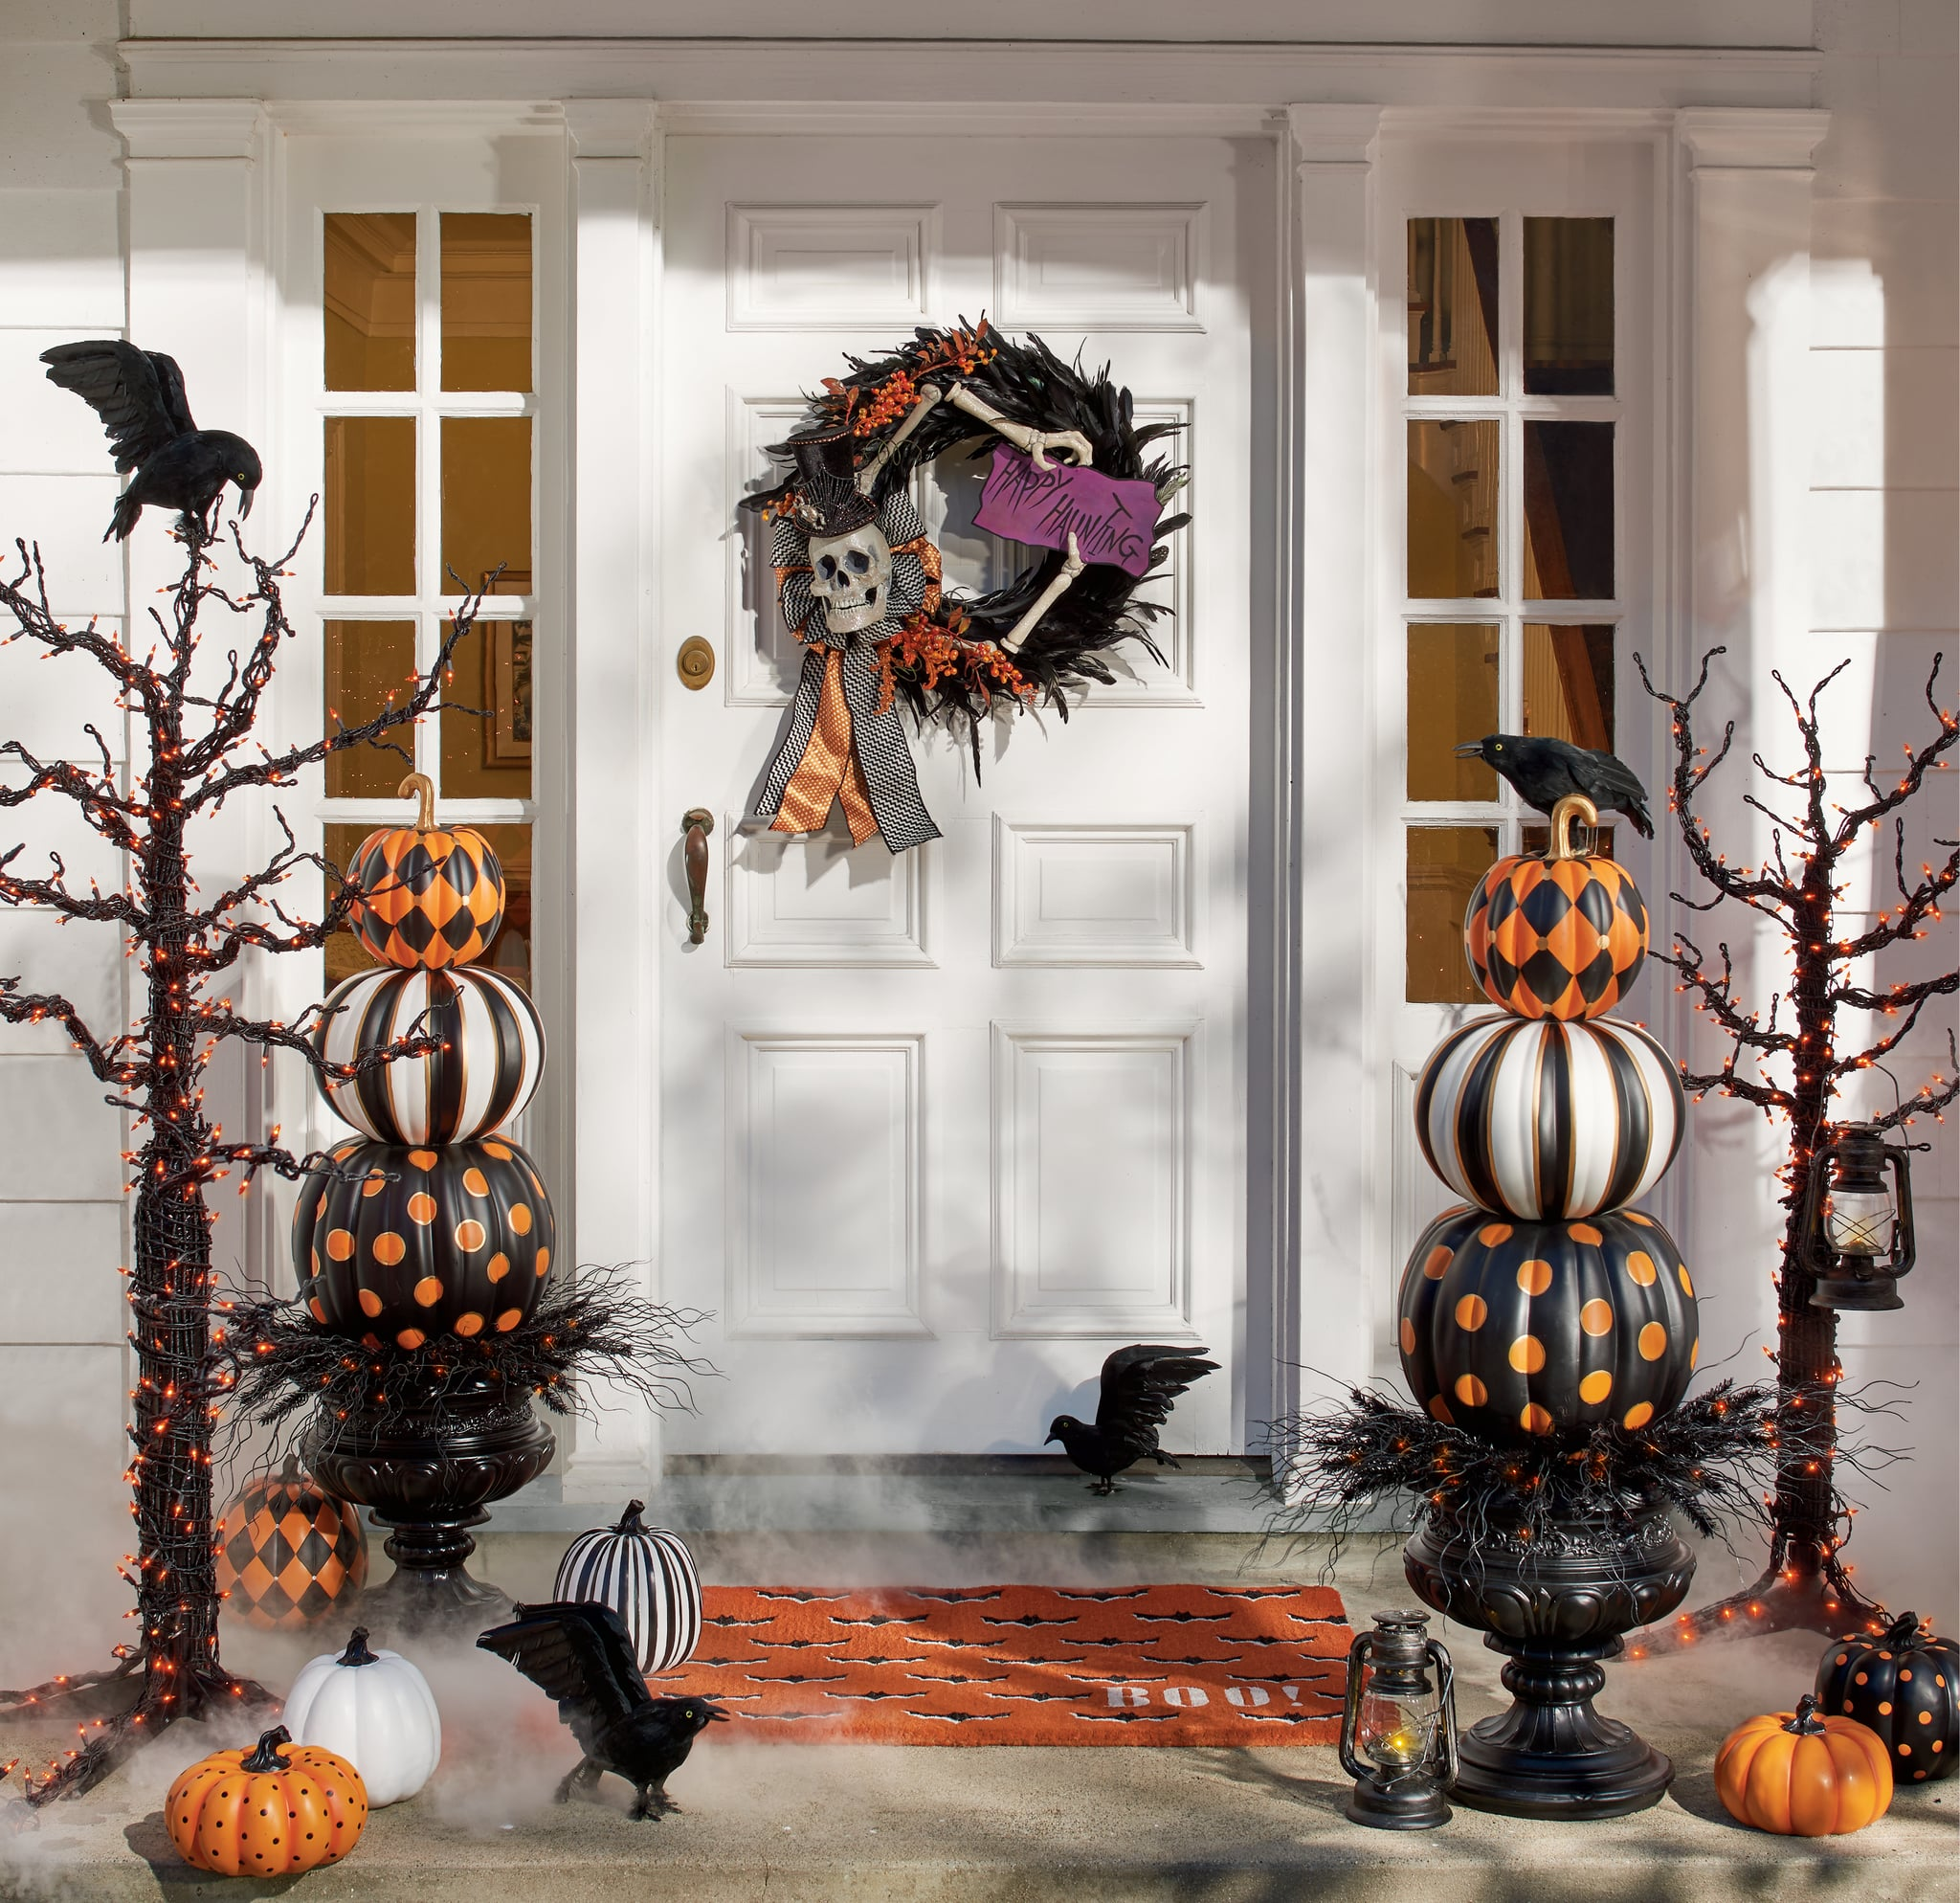 Halloween Pumpkin Topiary Best 2019 Halloween Decor At Grandin Road Popsugar Home Australia Photo 12